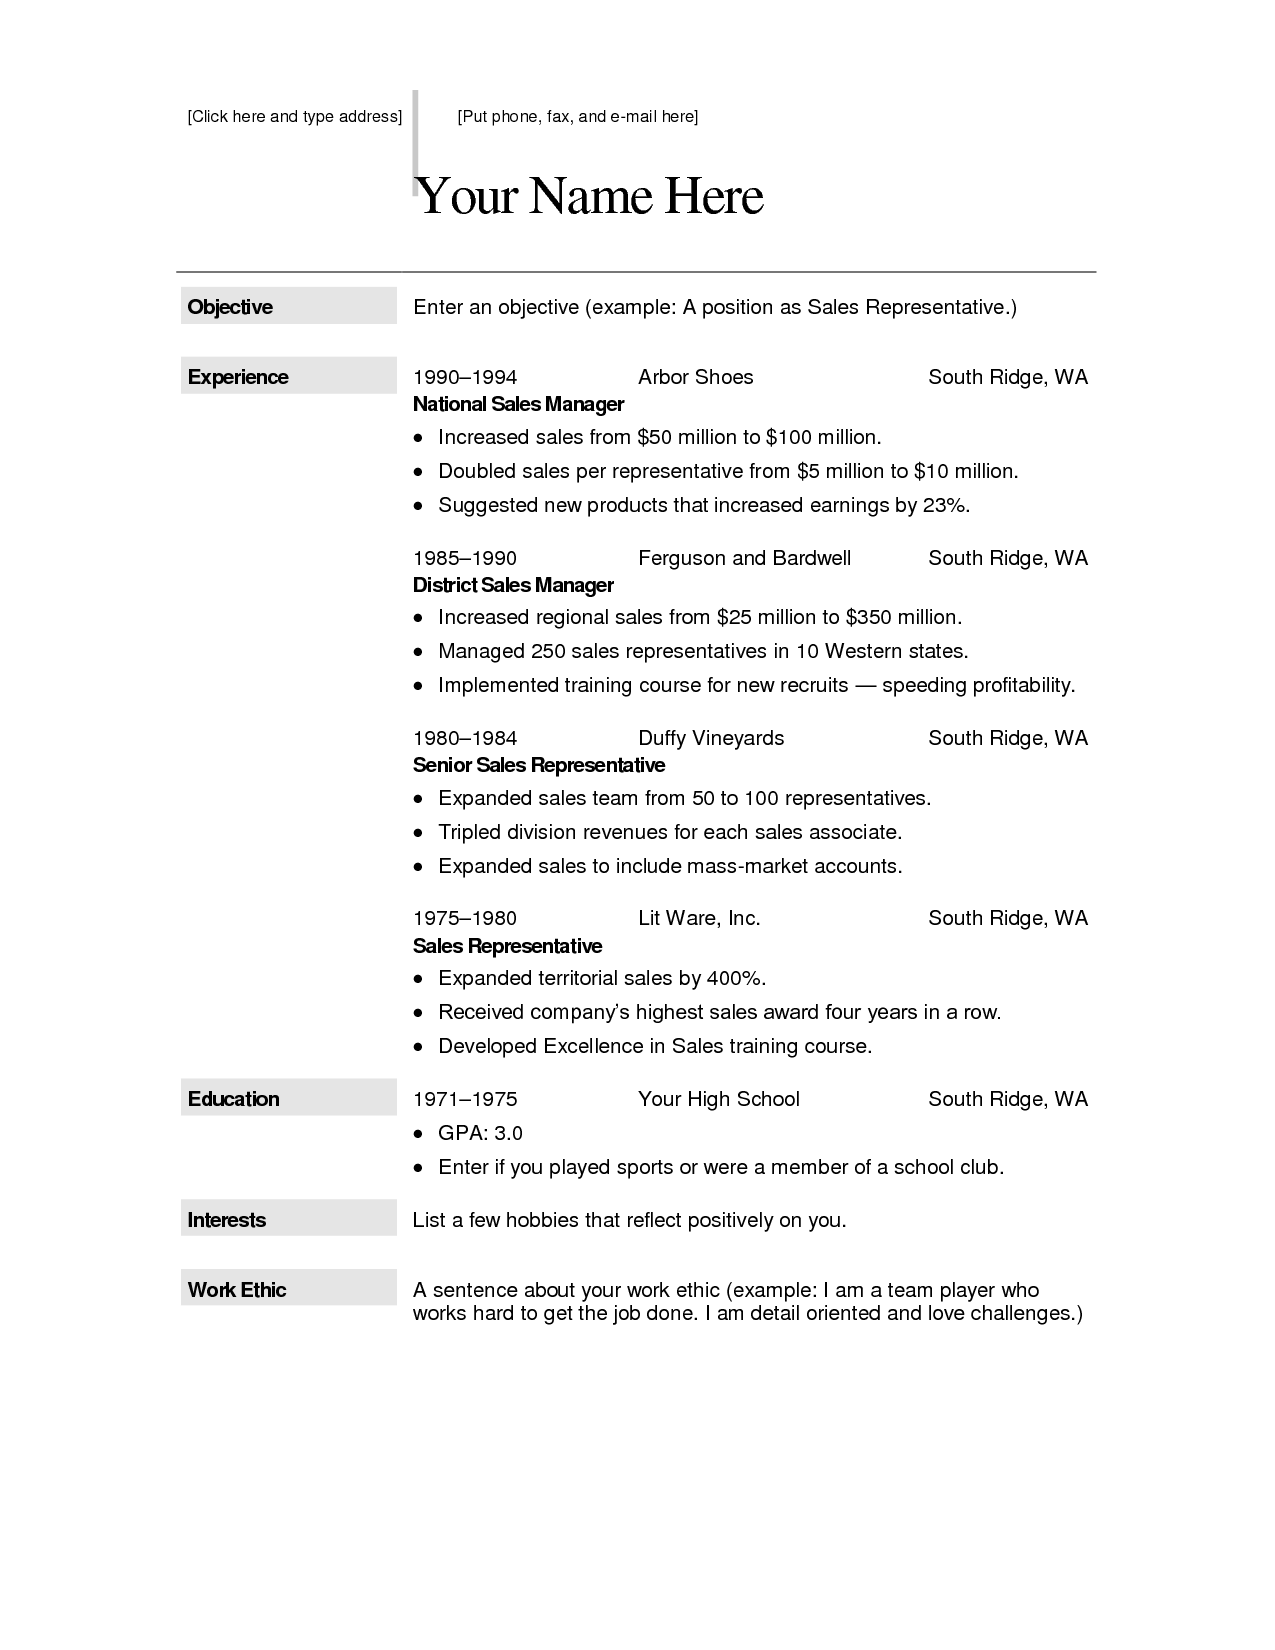 Free Usable Resume Templates Free Resume Templates, Free Blank Resume Free  Printable Resume Format Free Printable For, Resume Examples Free Usable  Resume ...  Simple Resume Template Free Download